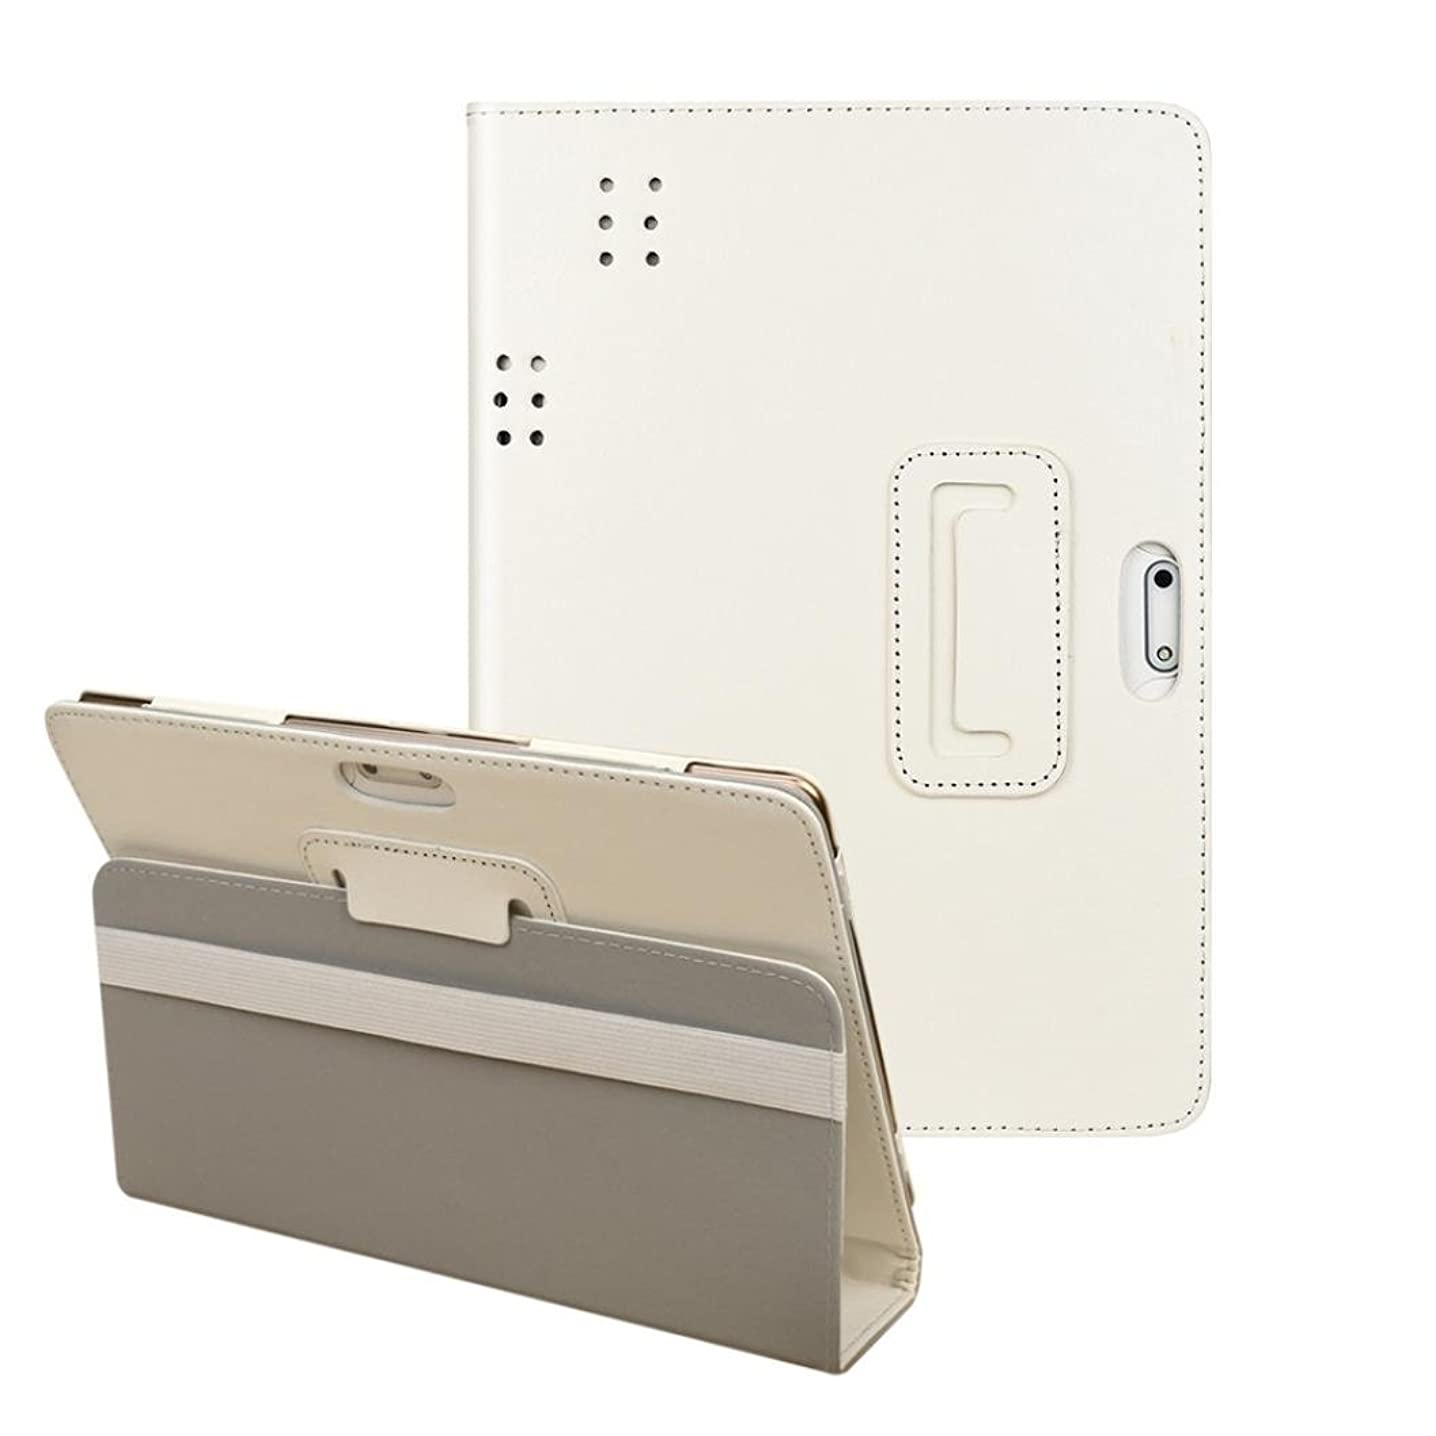 MChoice Universal Folio Leather Stand Cover Case For 10 10.1 Inch Android Tablet PC